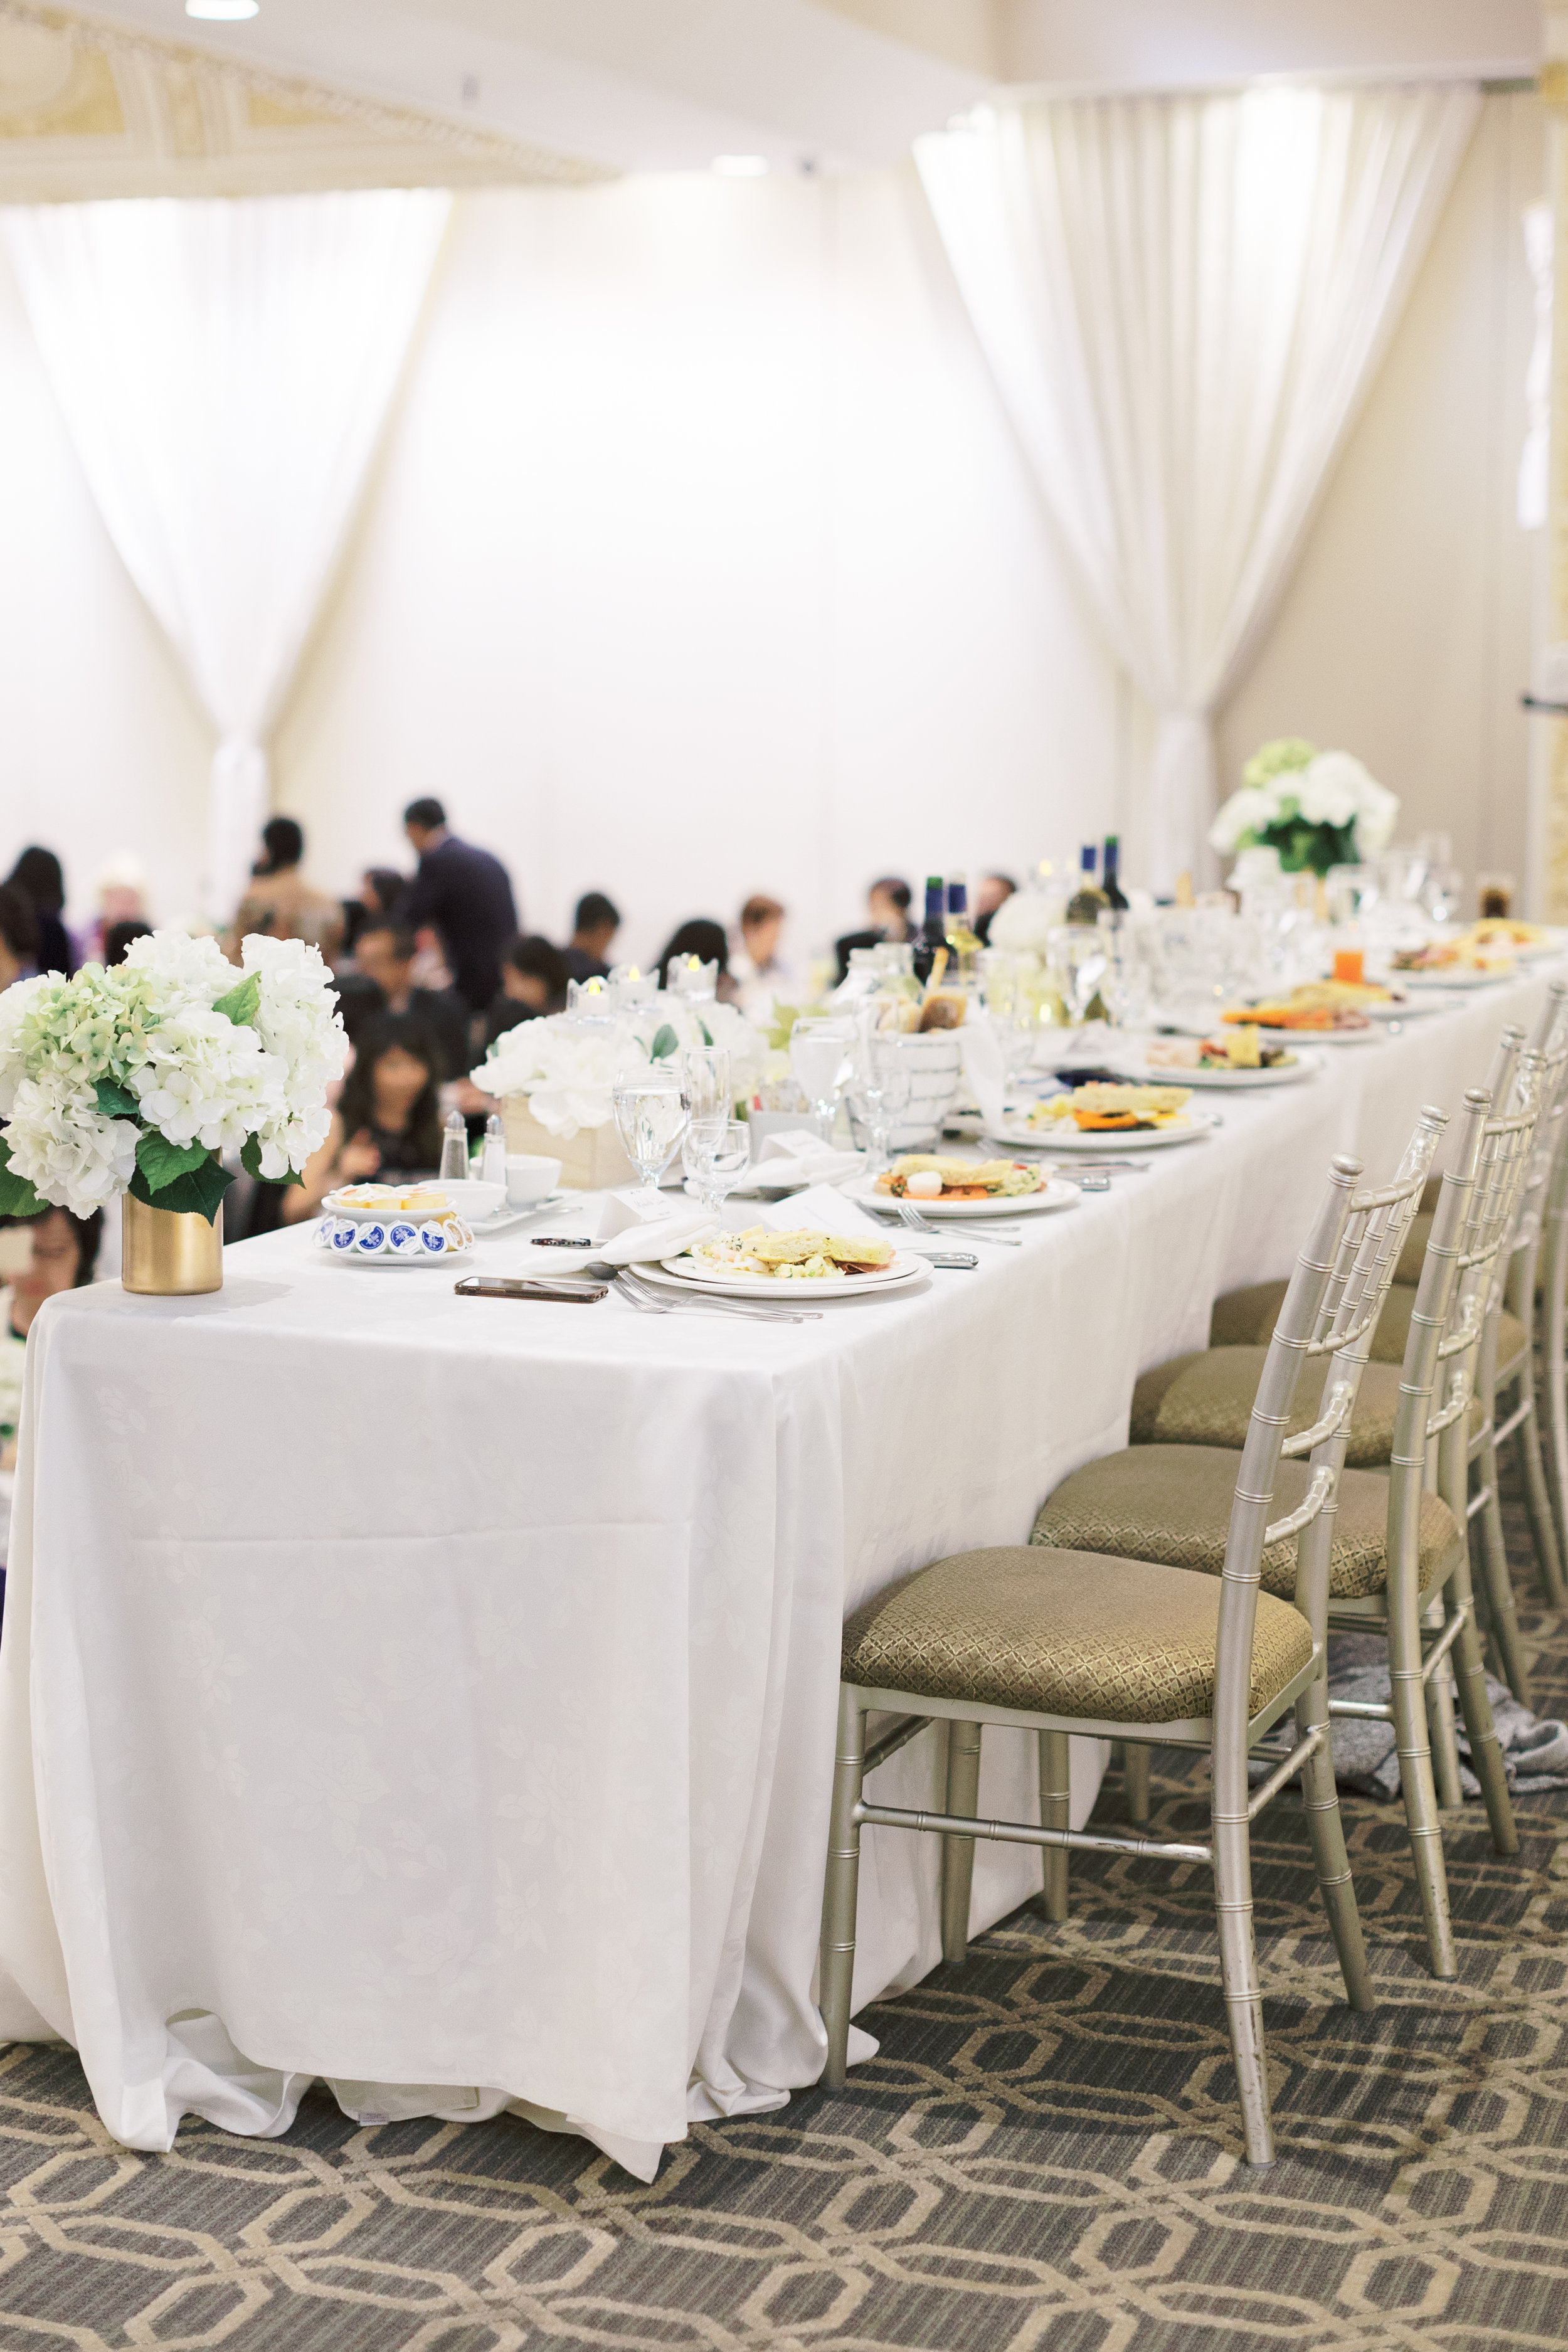 Paradise Banquet Hall Wedding - Reception-23.jpg